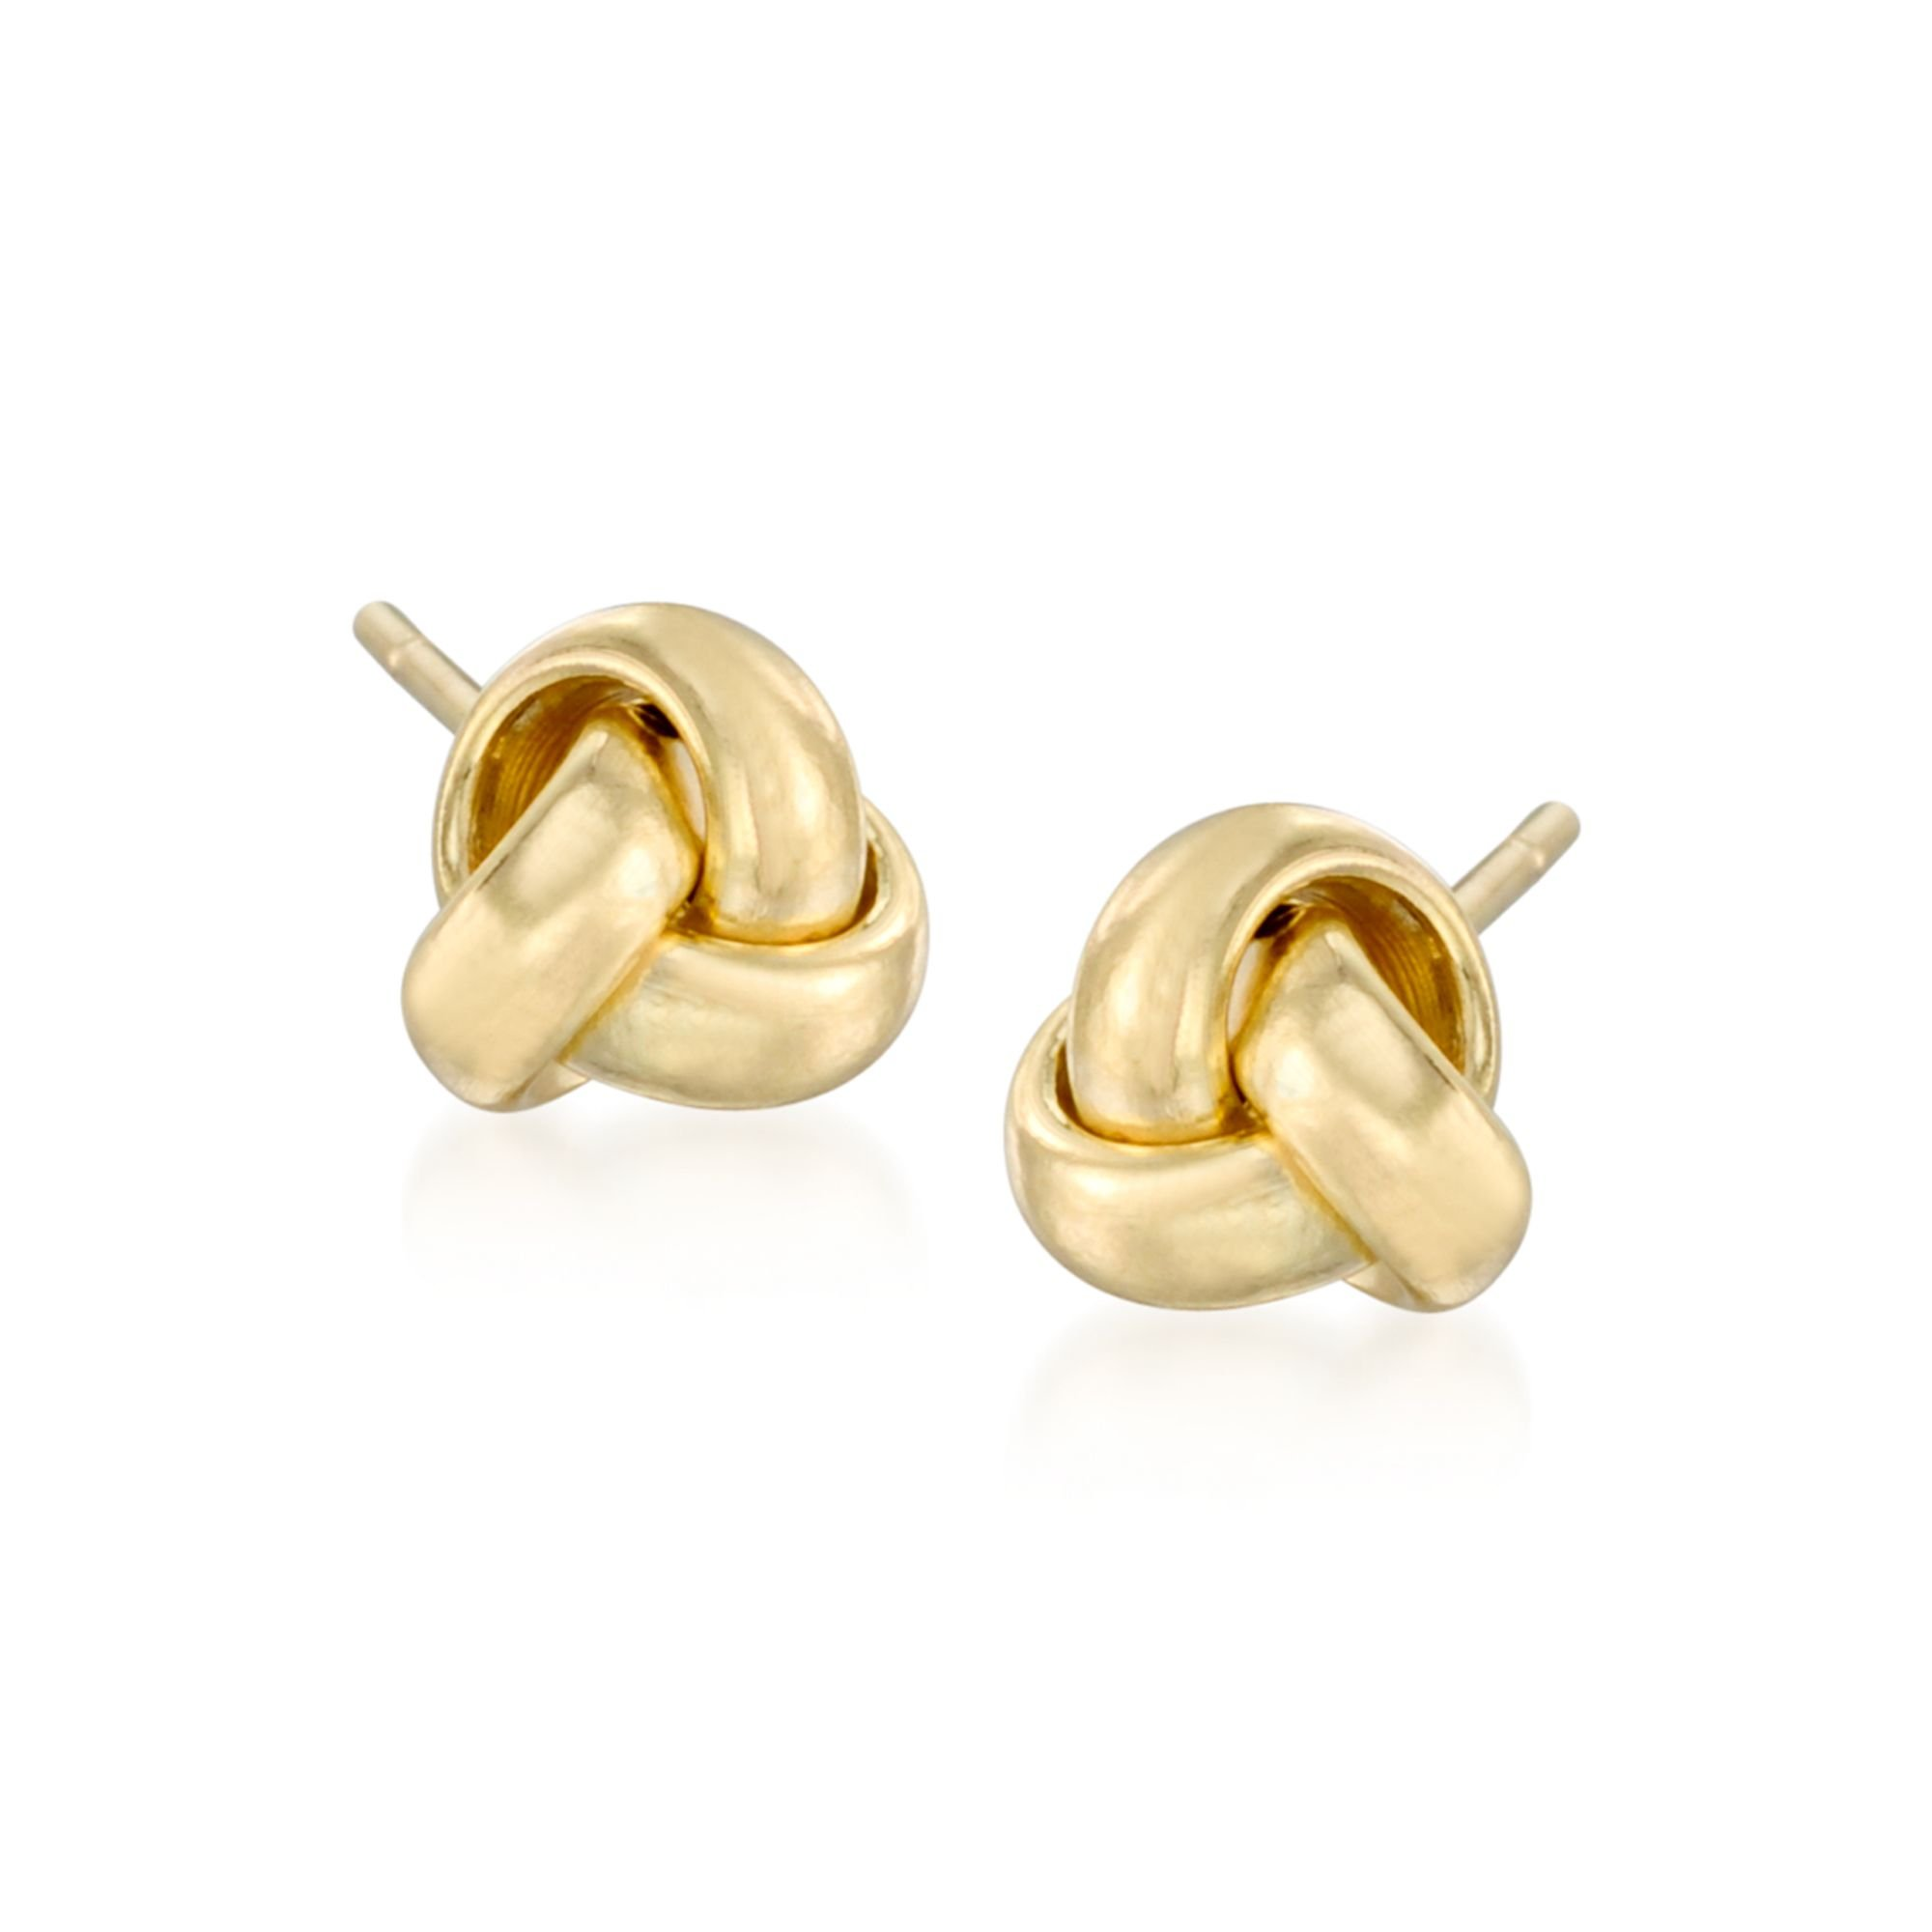 Ross-Simons 14kt Yellow Gold Love Knot Stud Earrings, Includes Jewelry Presentation Box